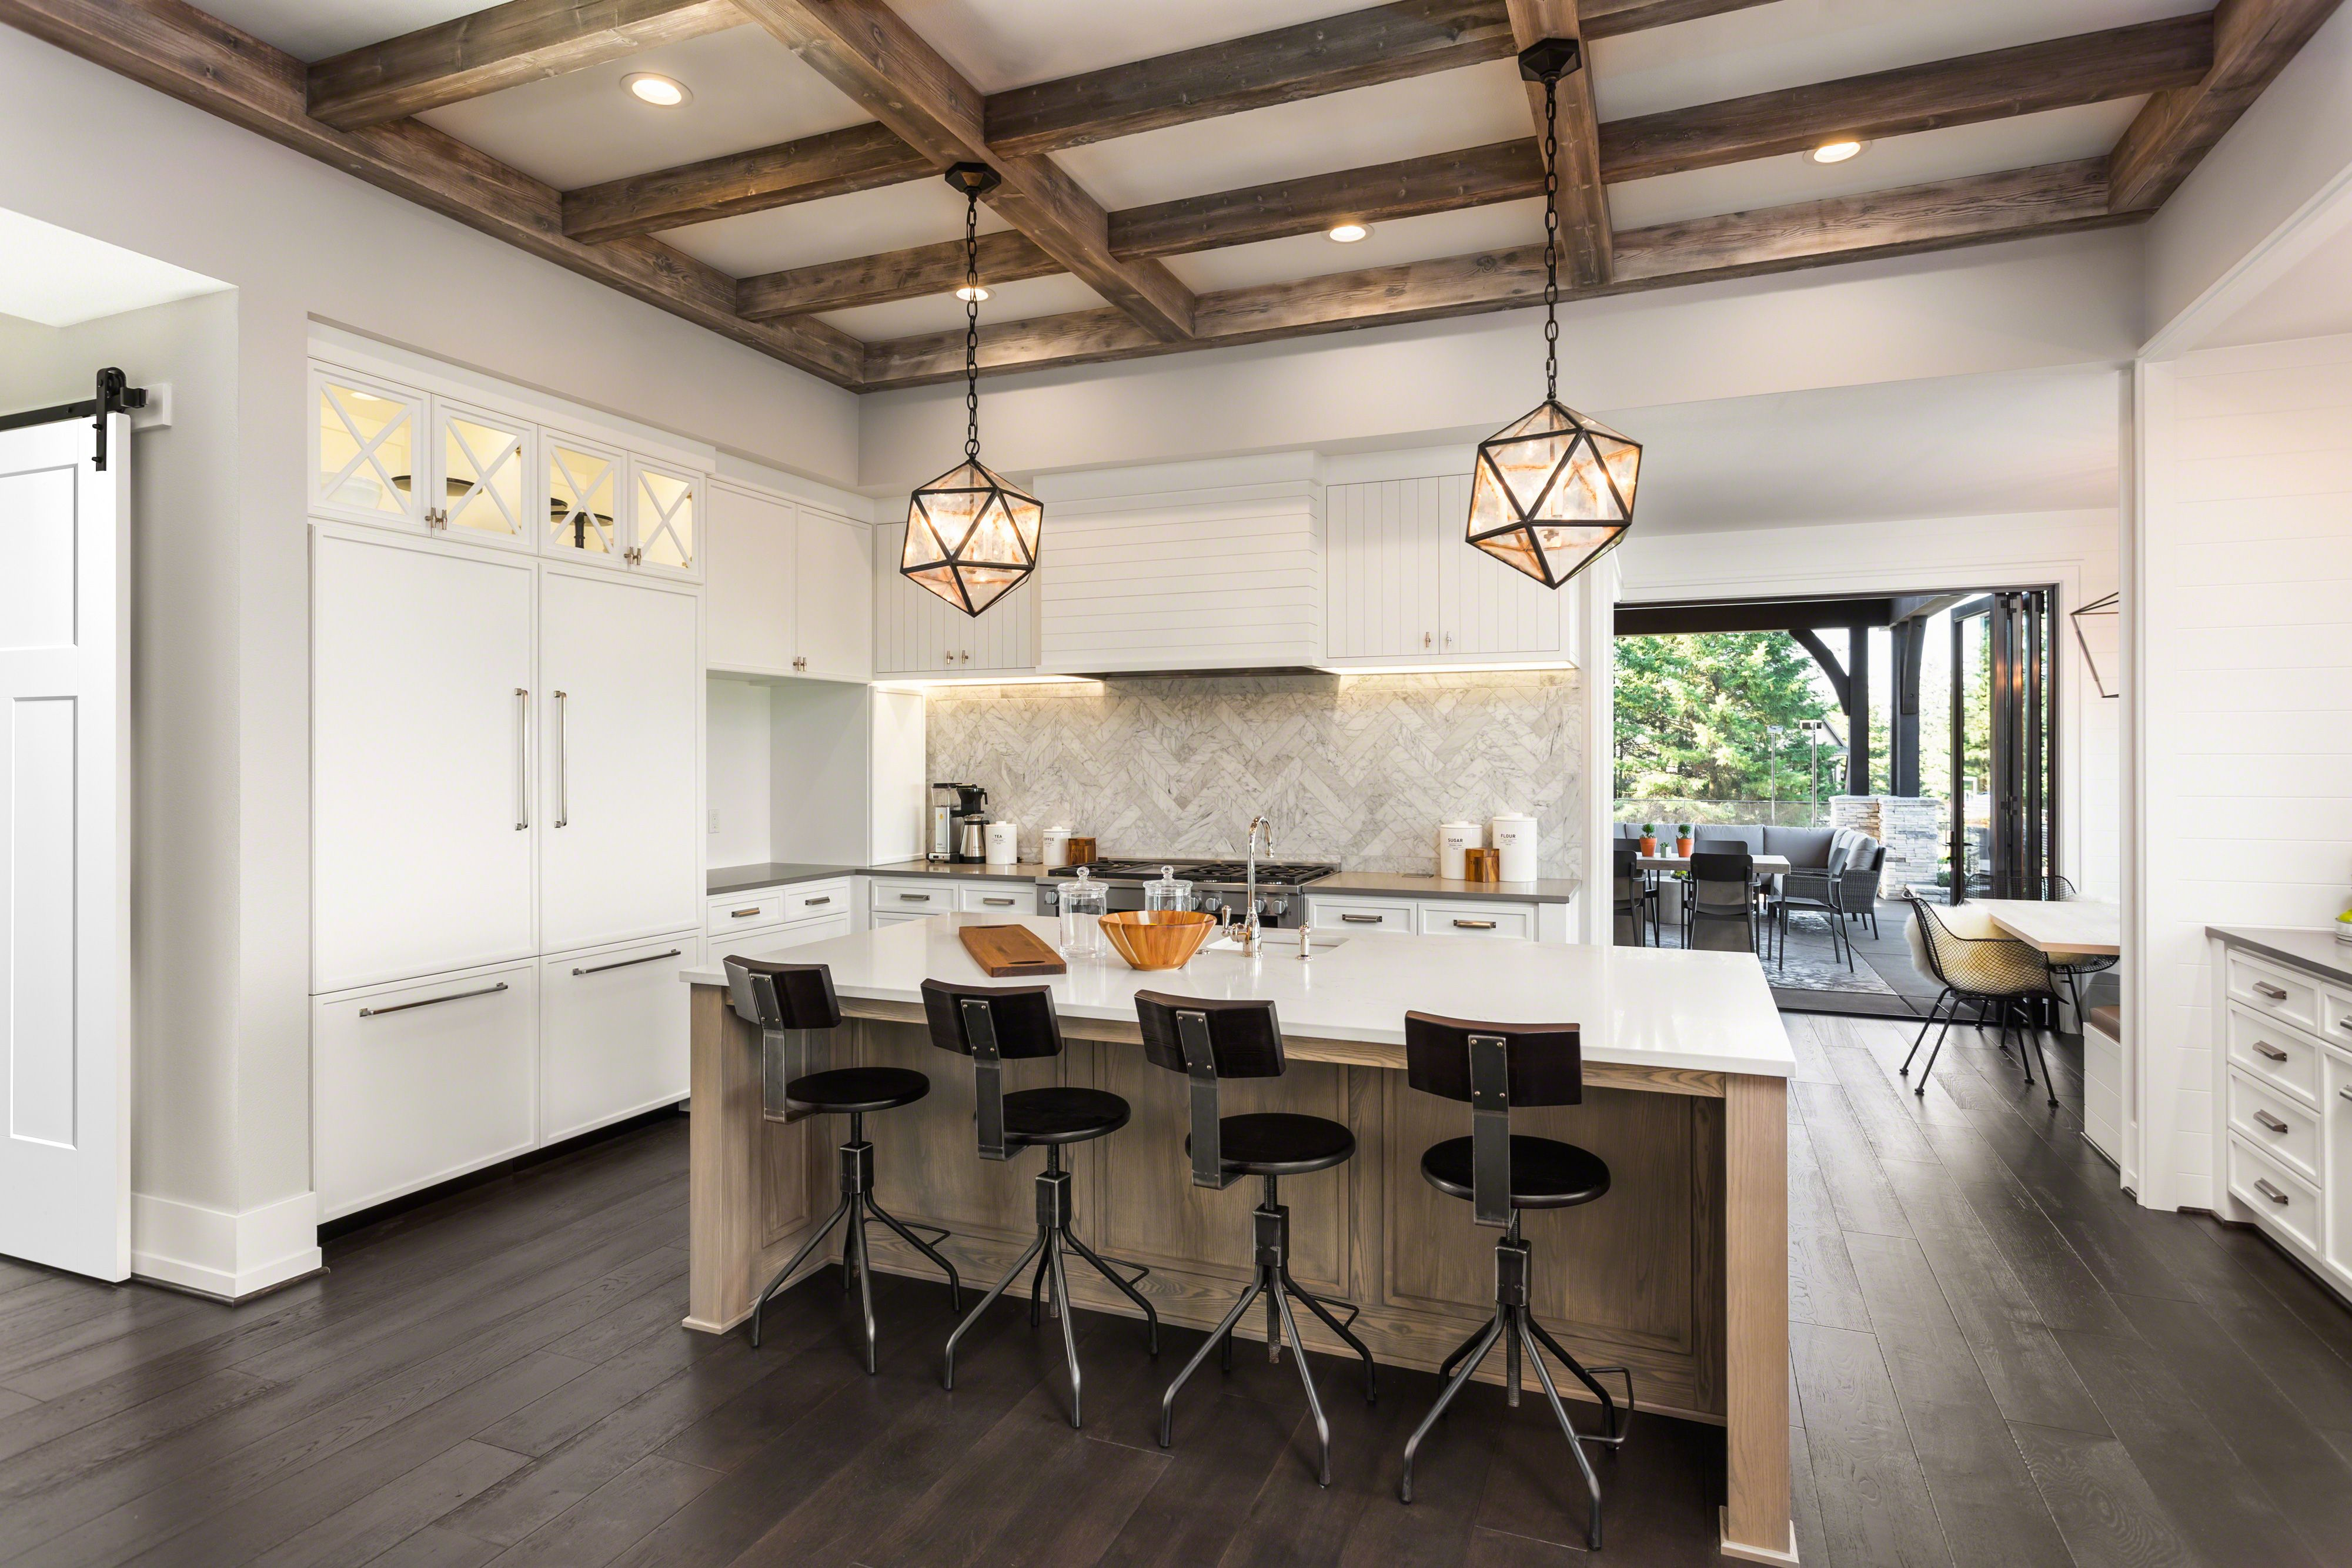 White Craftsman Style Open Concept Kitchen With Wooden Ceiling Beam Accents And A White Shaker Door Craftsman Style Kitchen Kitchen Interior Shaker Doors